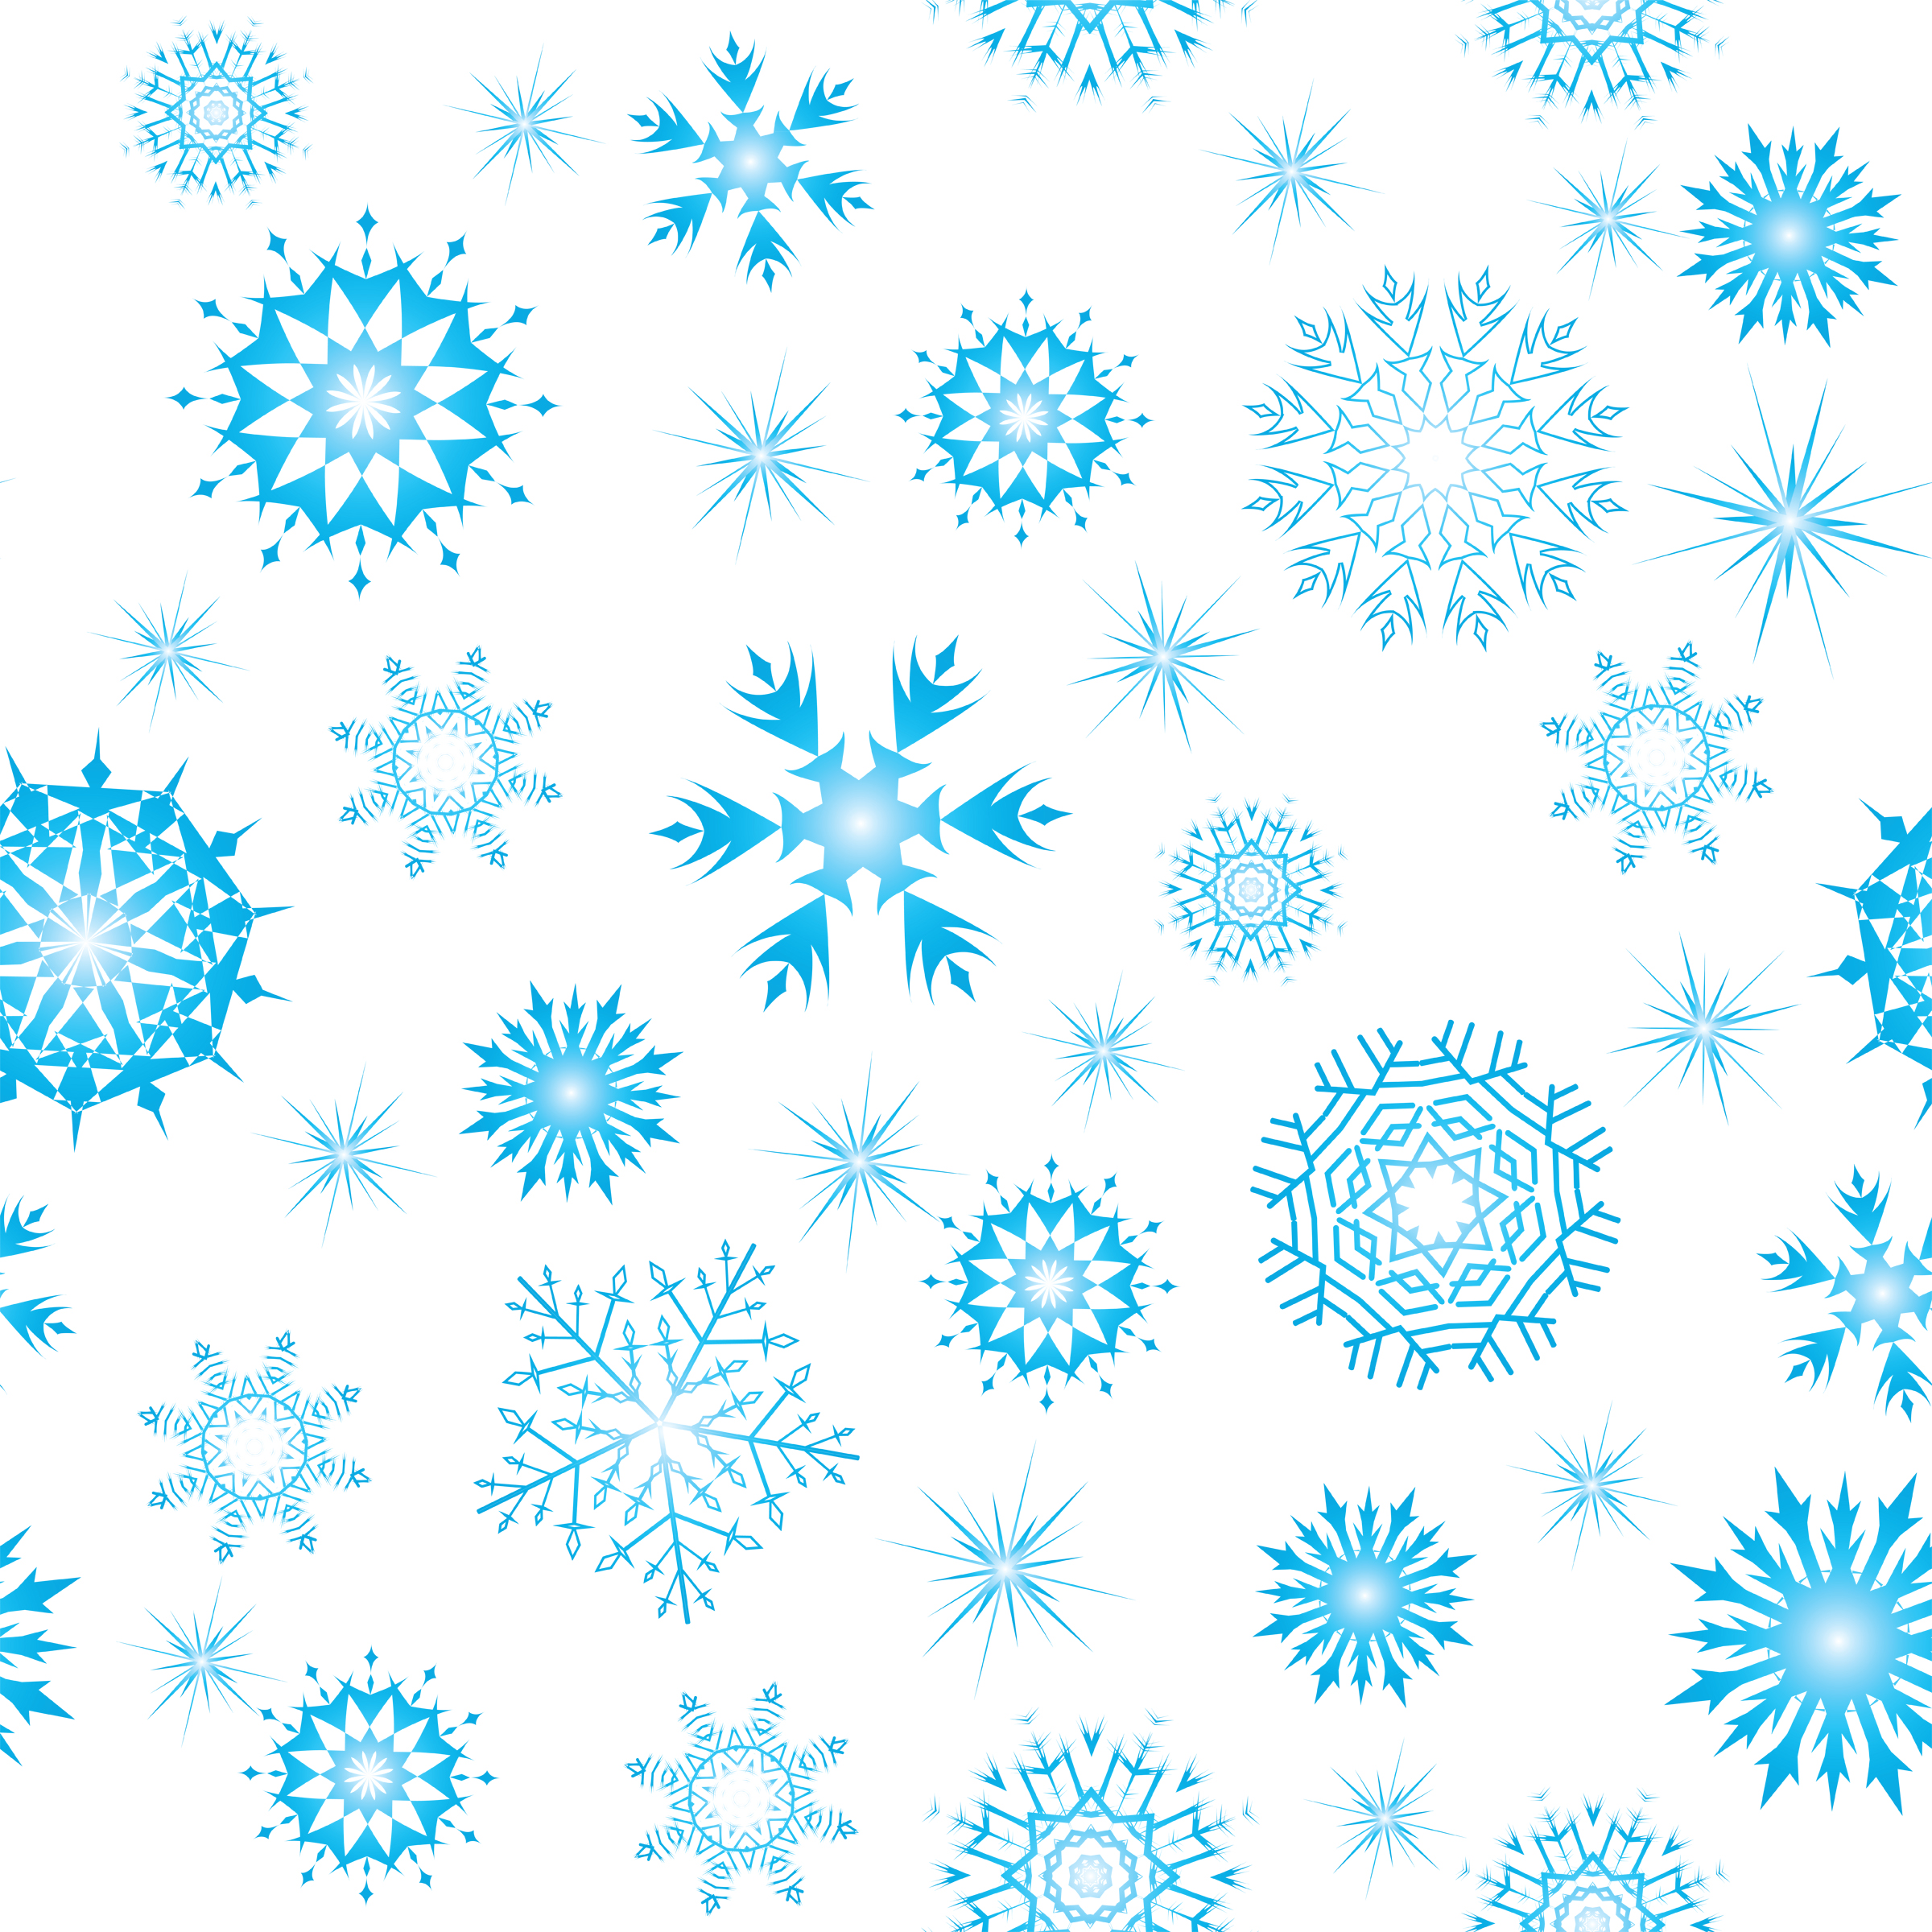 Family Craft: 3D Snowflakes